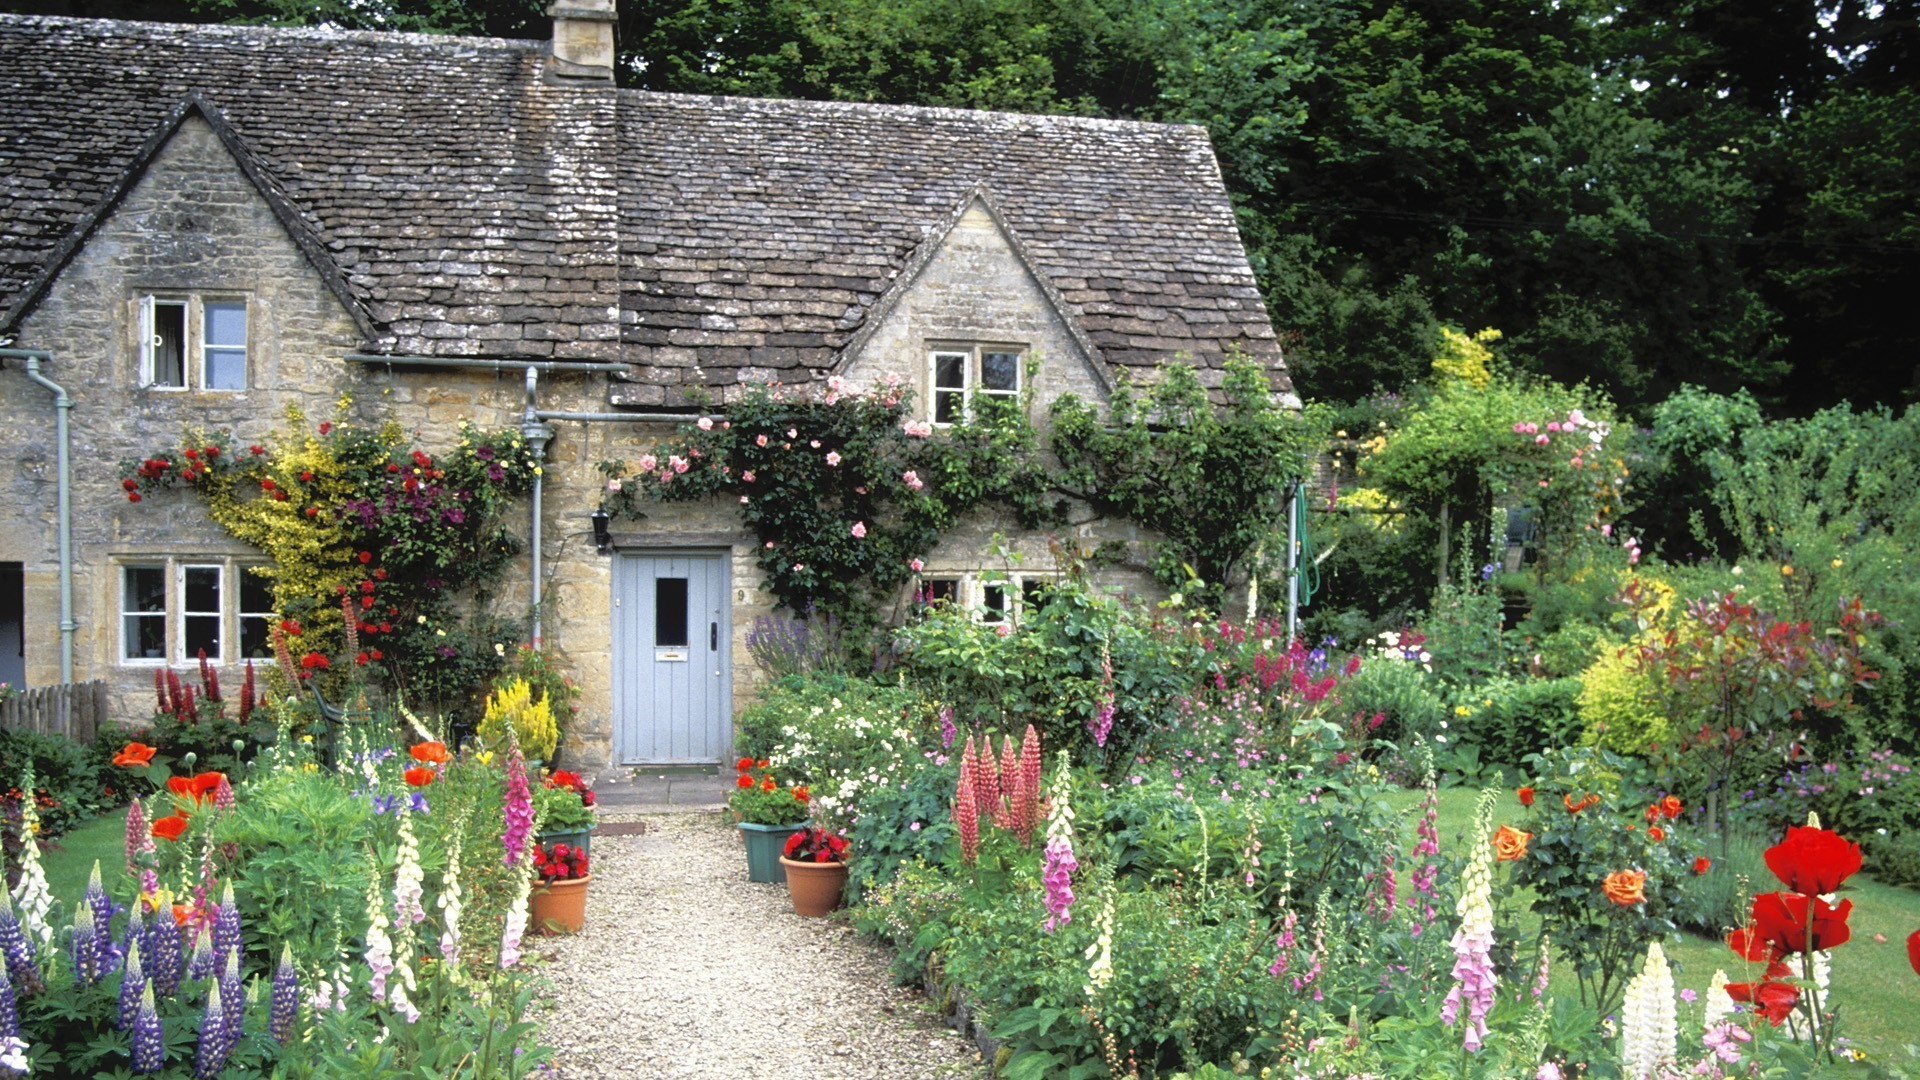 England cottage garden wallpaper 8115 for Garden design york uk